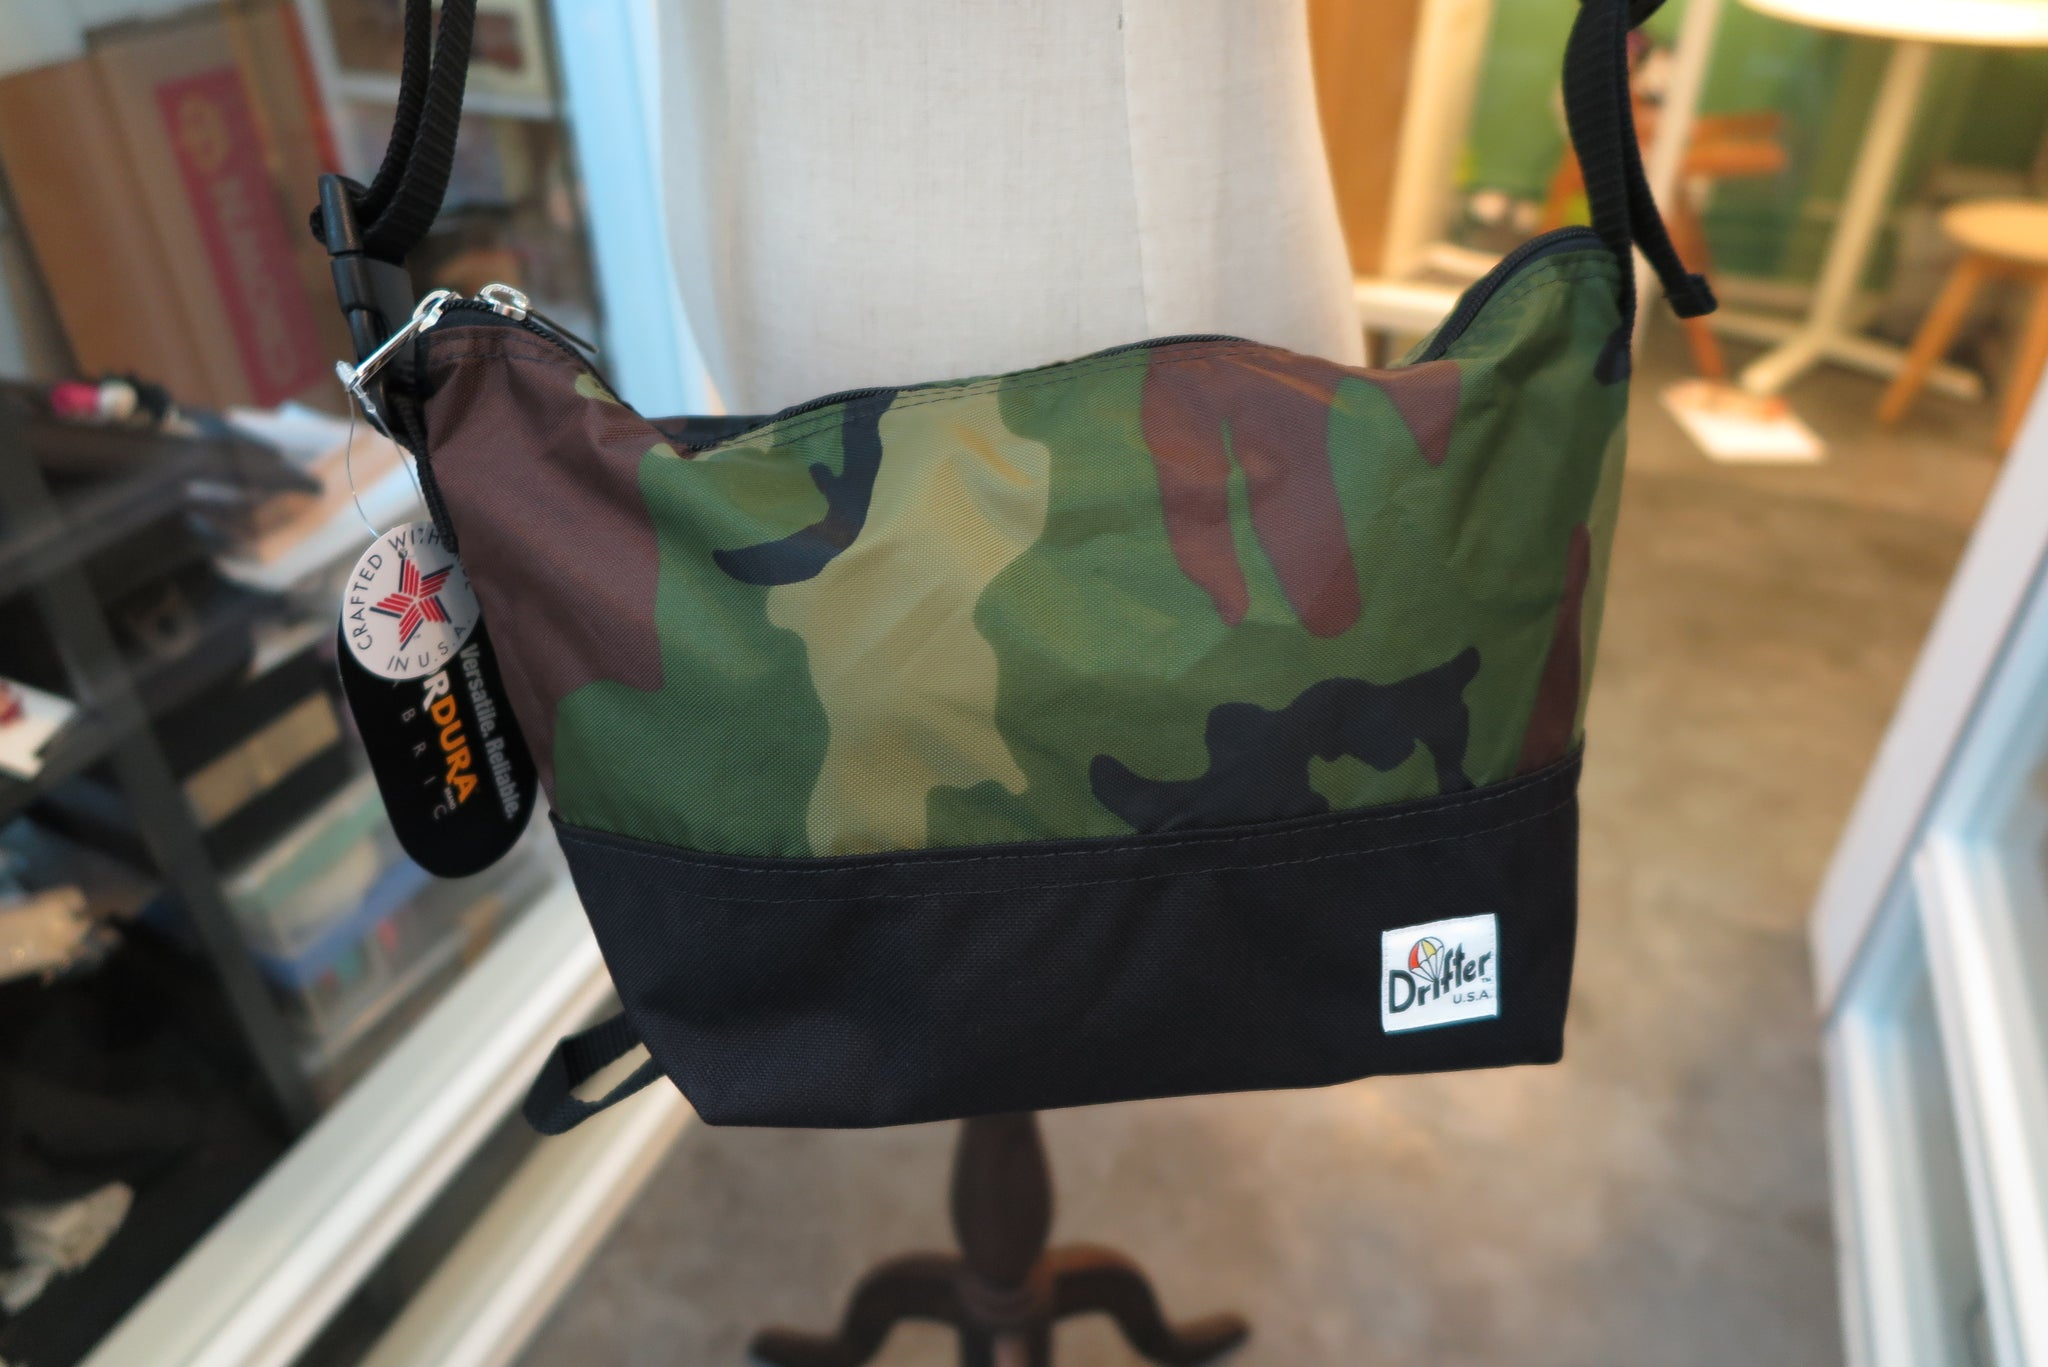 "Drifter Are Way Pouch Medium ""Made in USA"" - Woodland Camo/Black #DF1270-Bag-Navy Selected Shop"